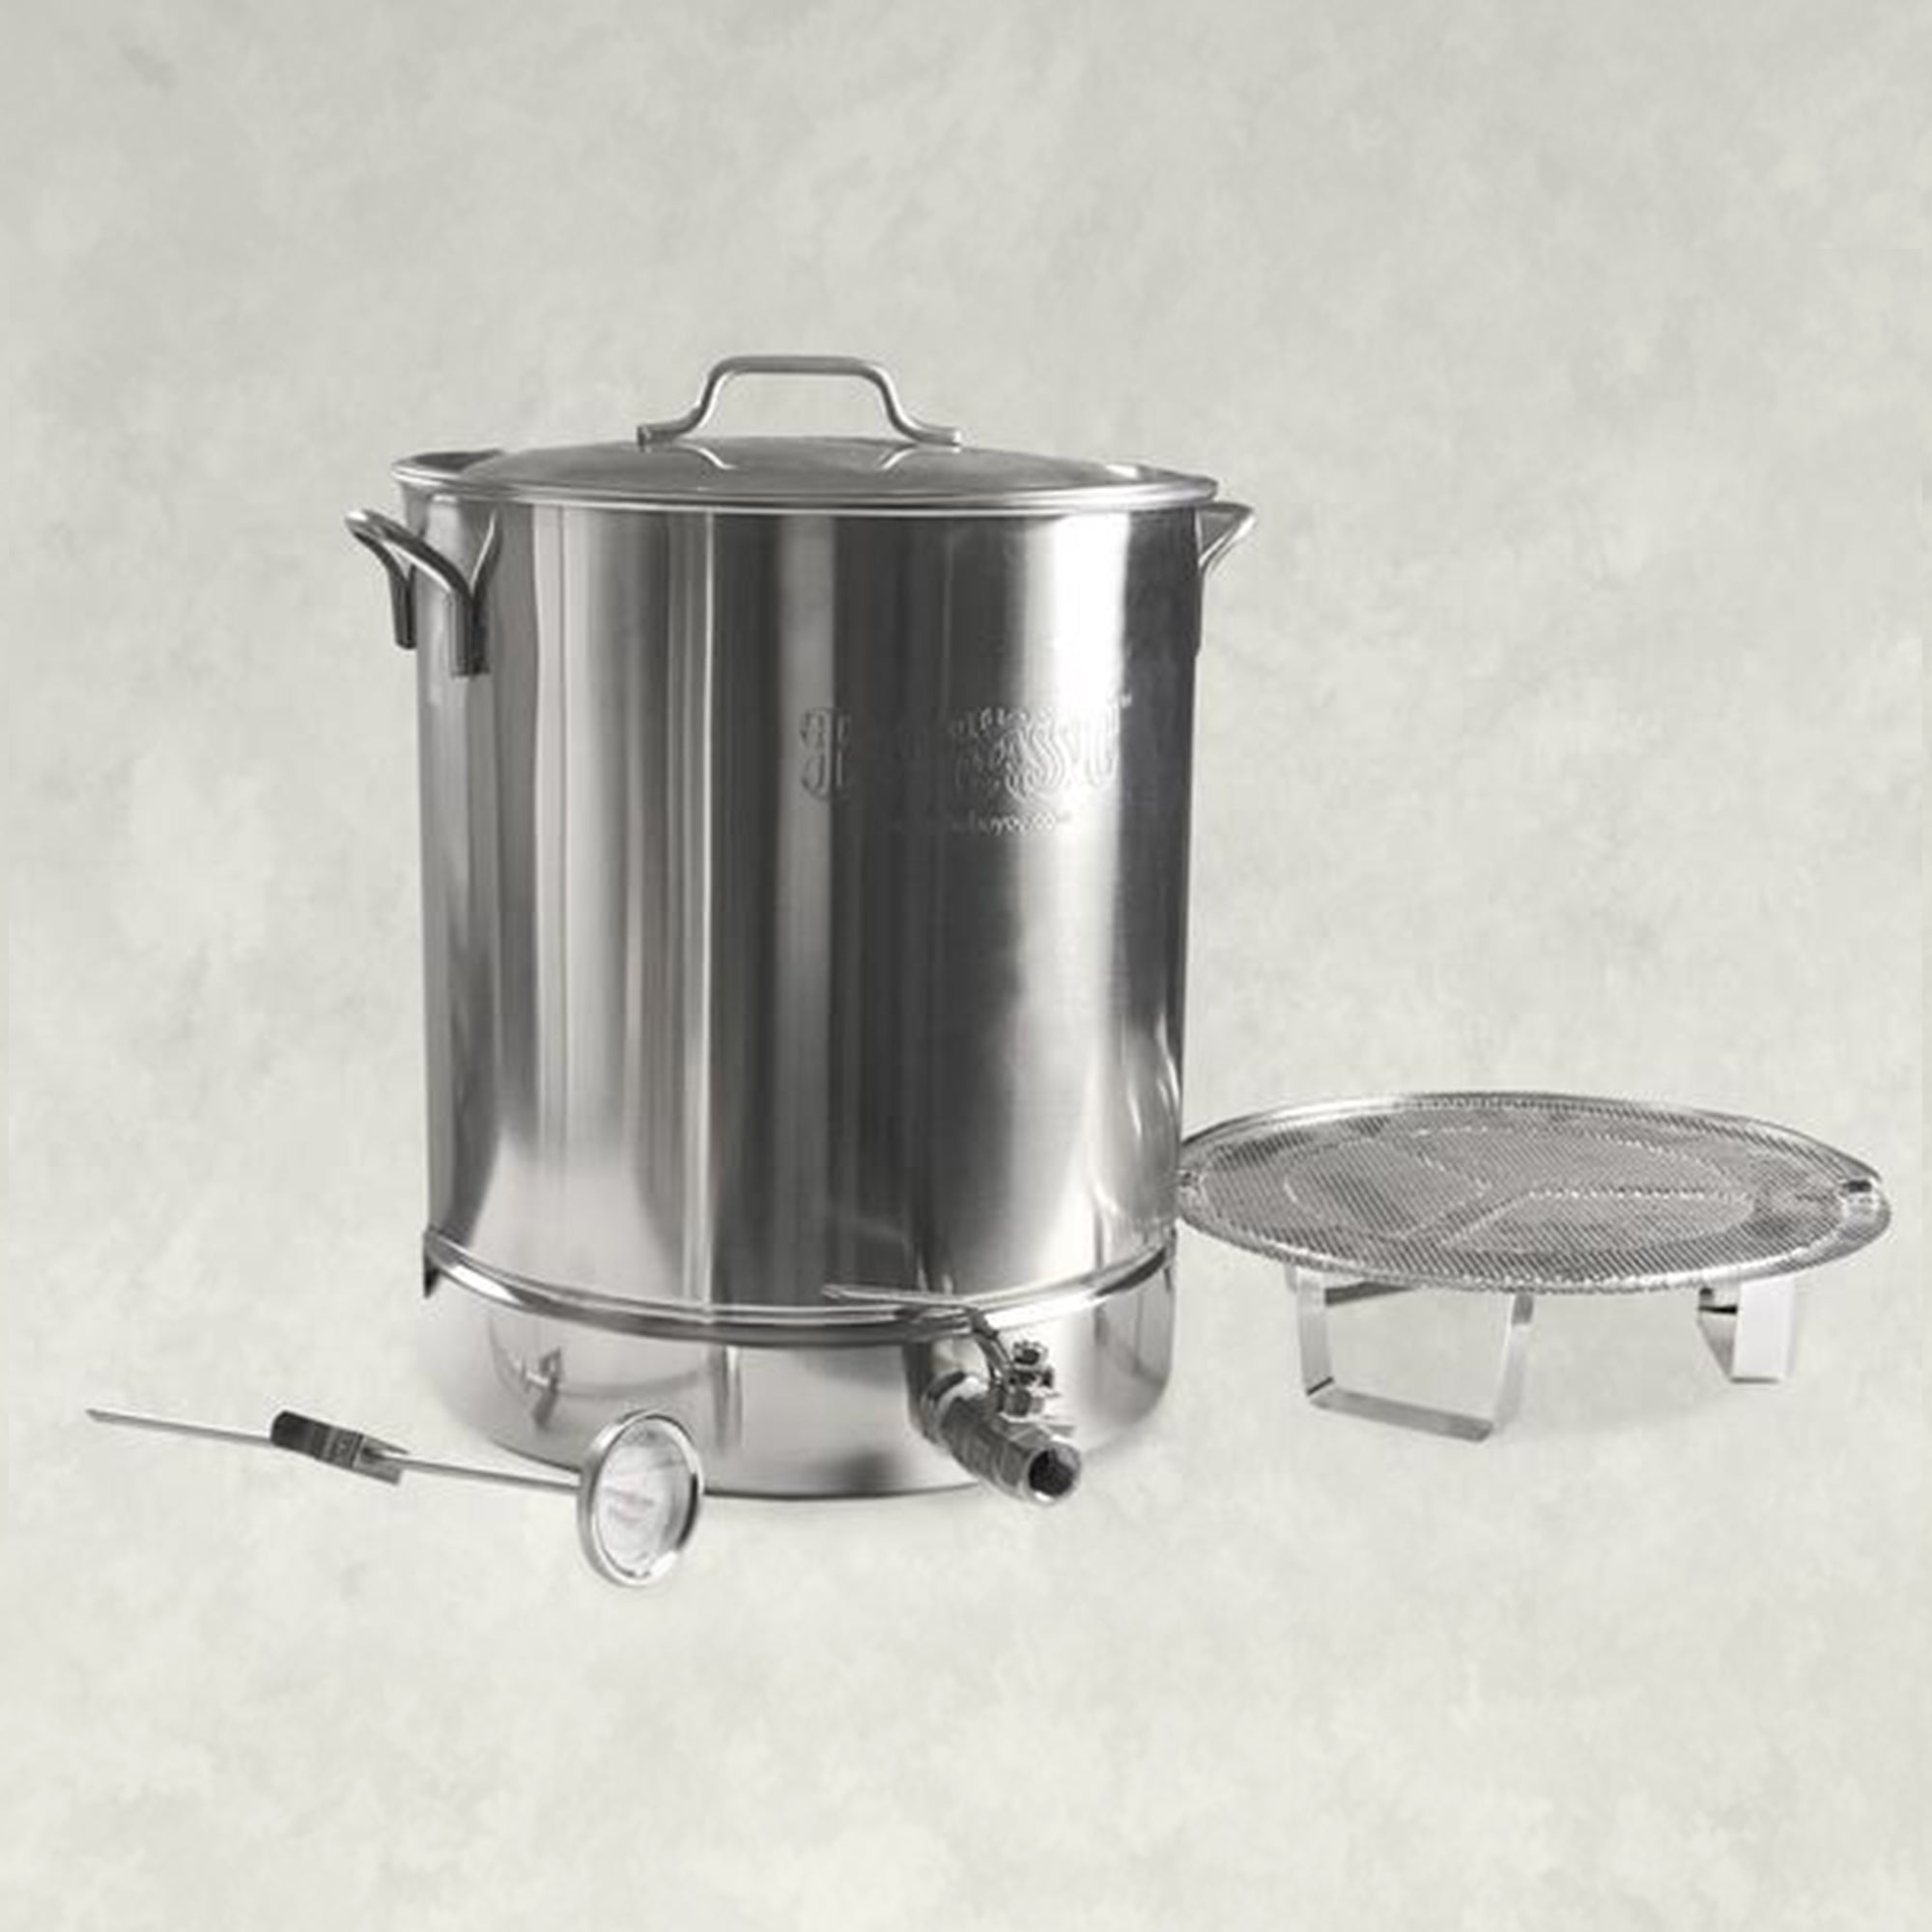 Stainless Stockpot with Spigot, False Bottom and Thermometer